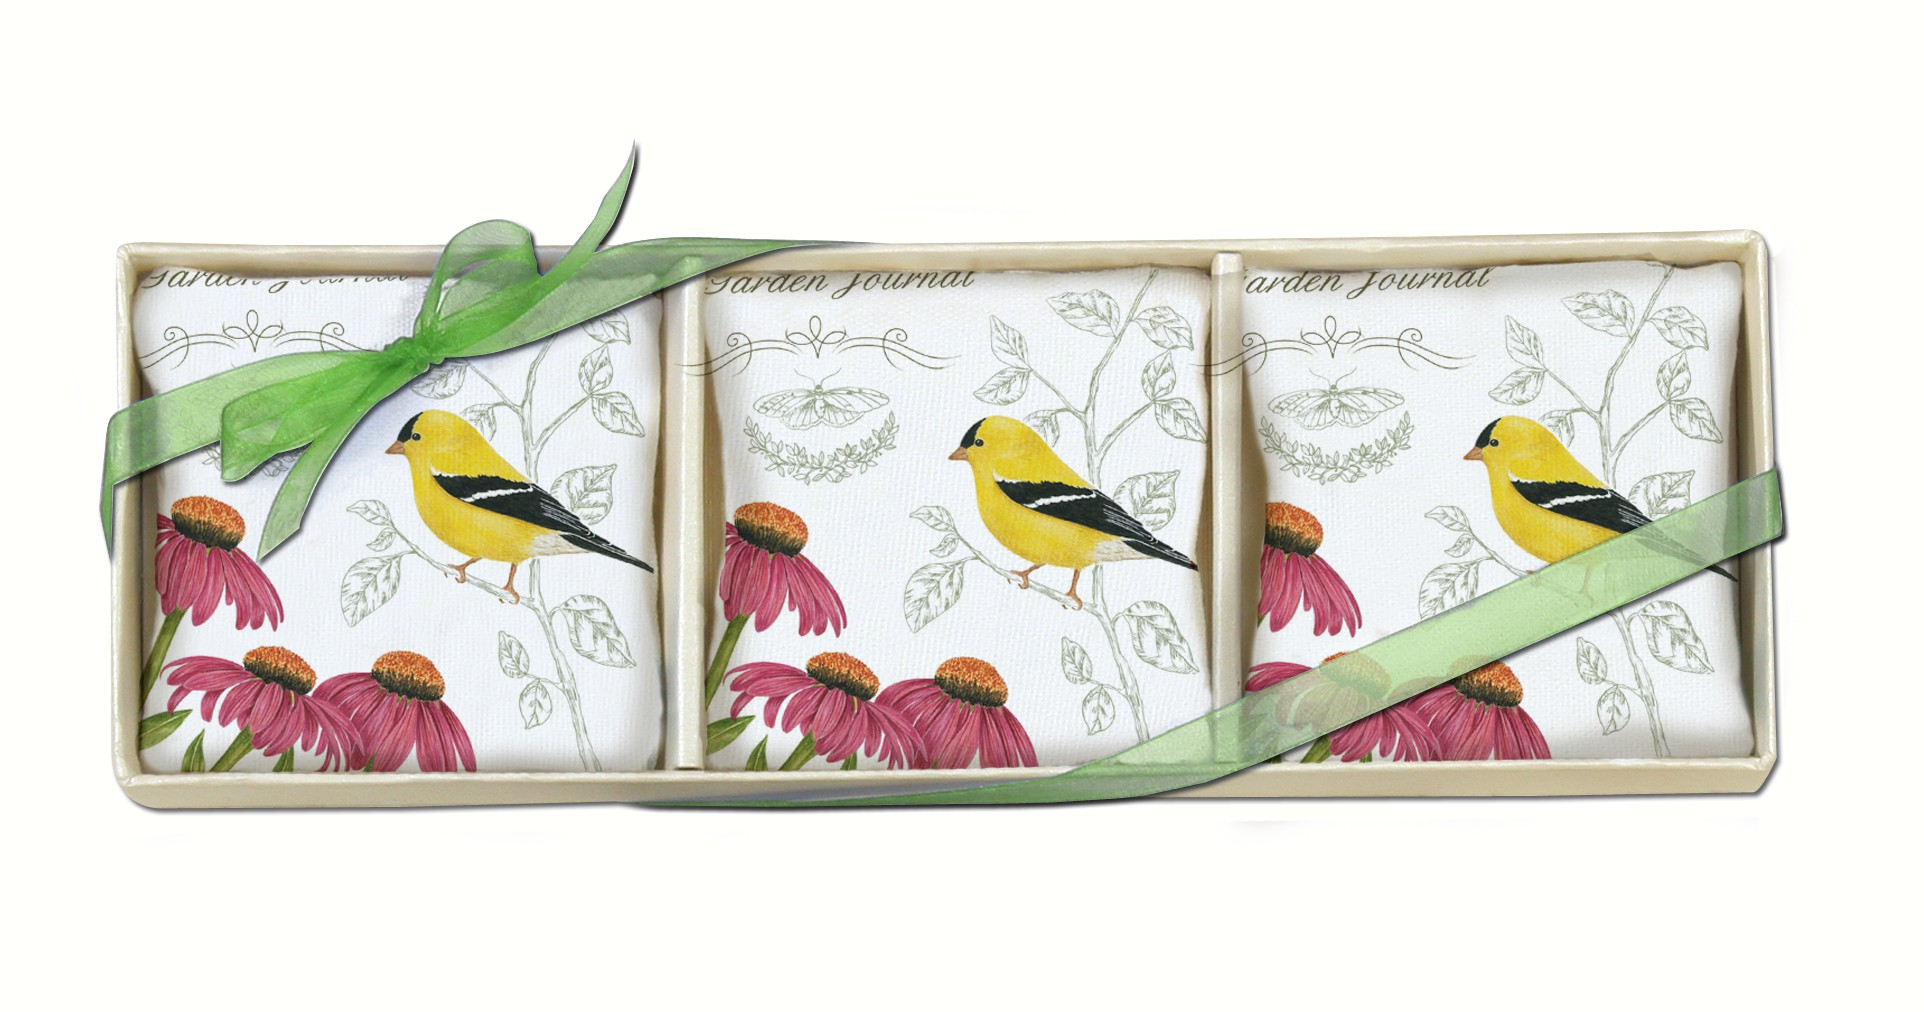 Goldfinch GJ Gift Boxed Lavendar Sachets (3 pcs)